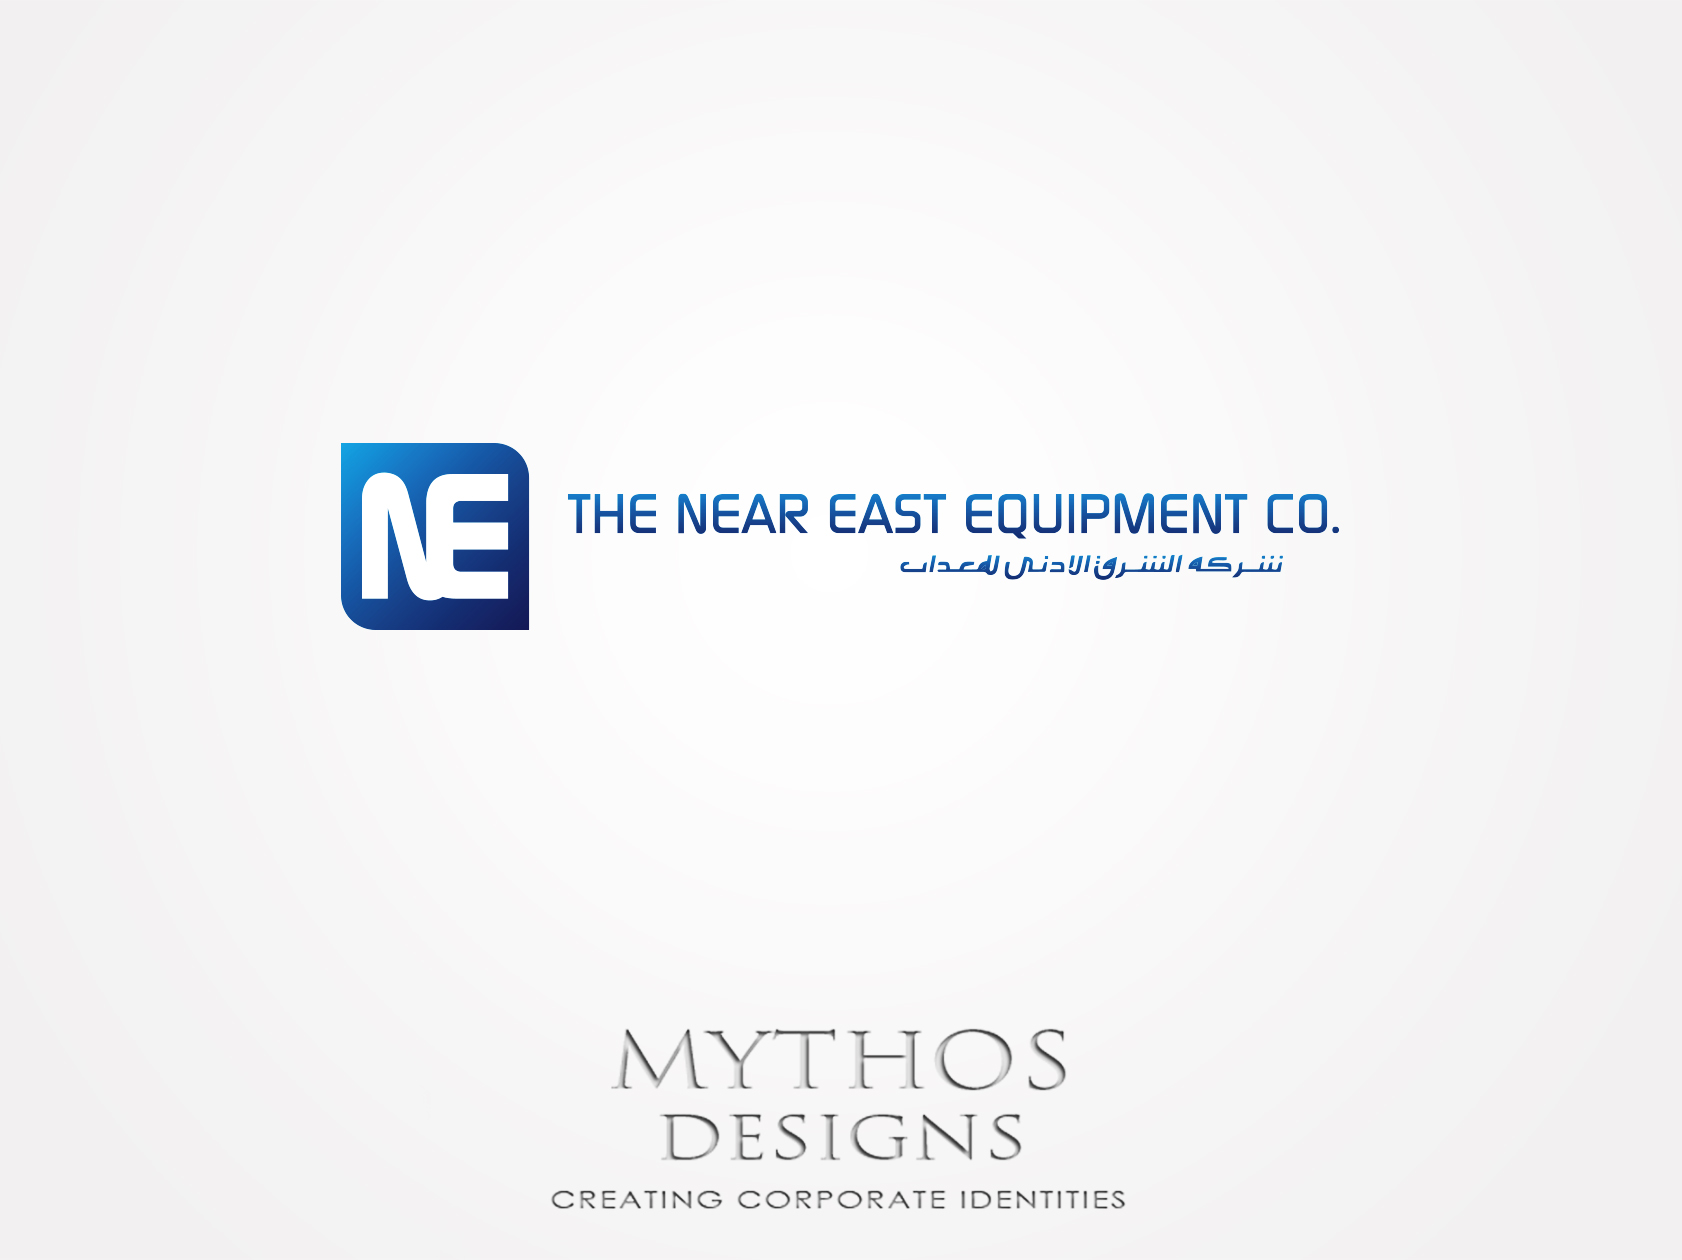 Logo Design by Mythos Designs - Entry No. 153 in the Logo Design Contest Imaginative Logo Design for The Near East Equipment Co..